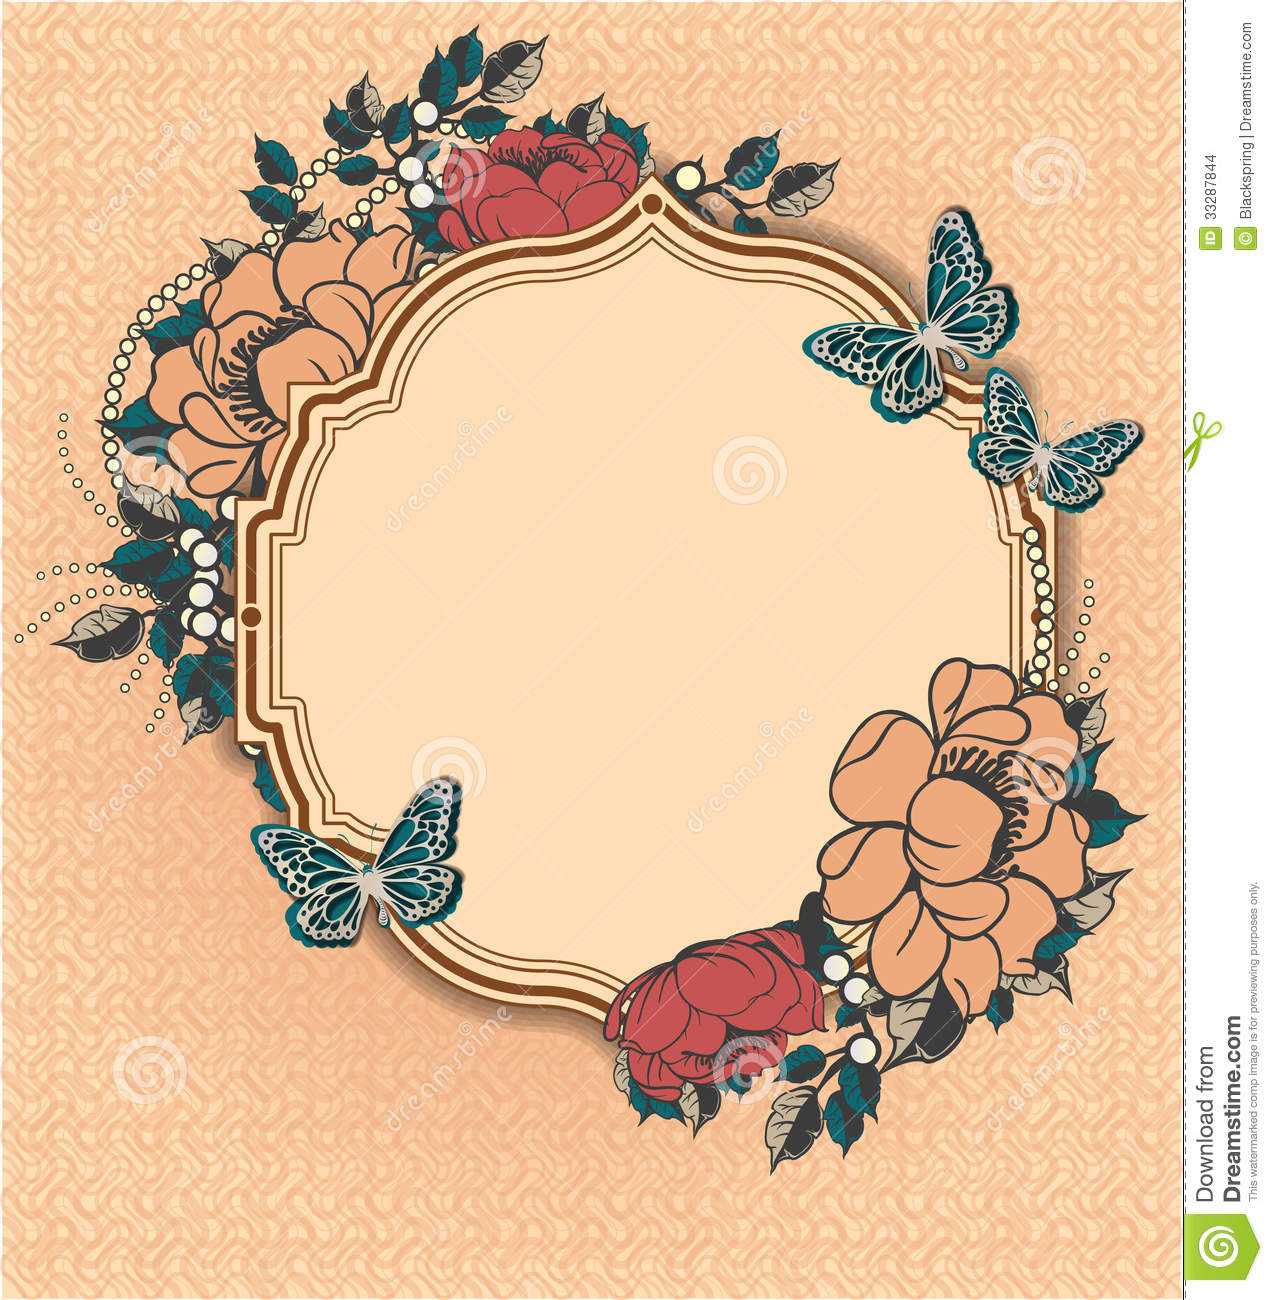 round floral frame template stock vector illustration of vintage